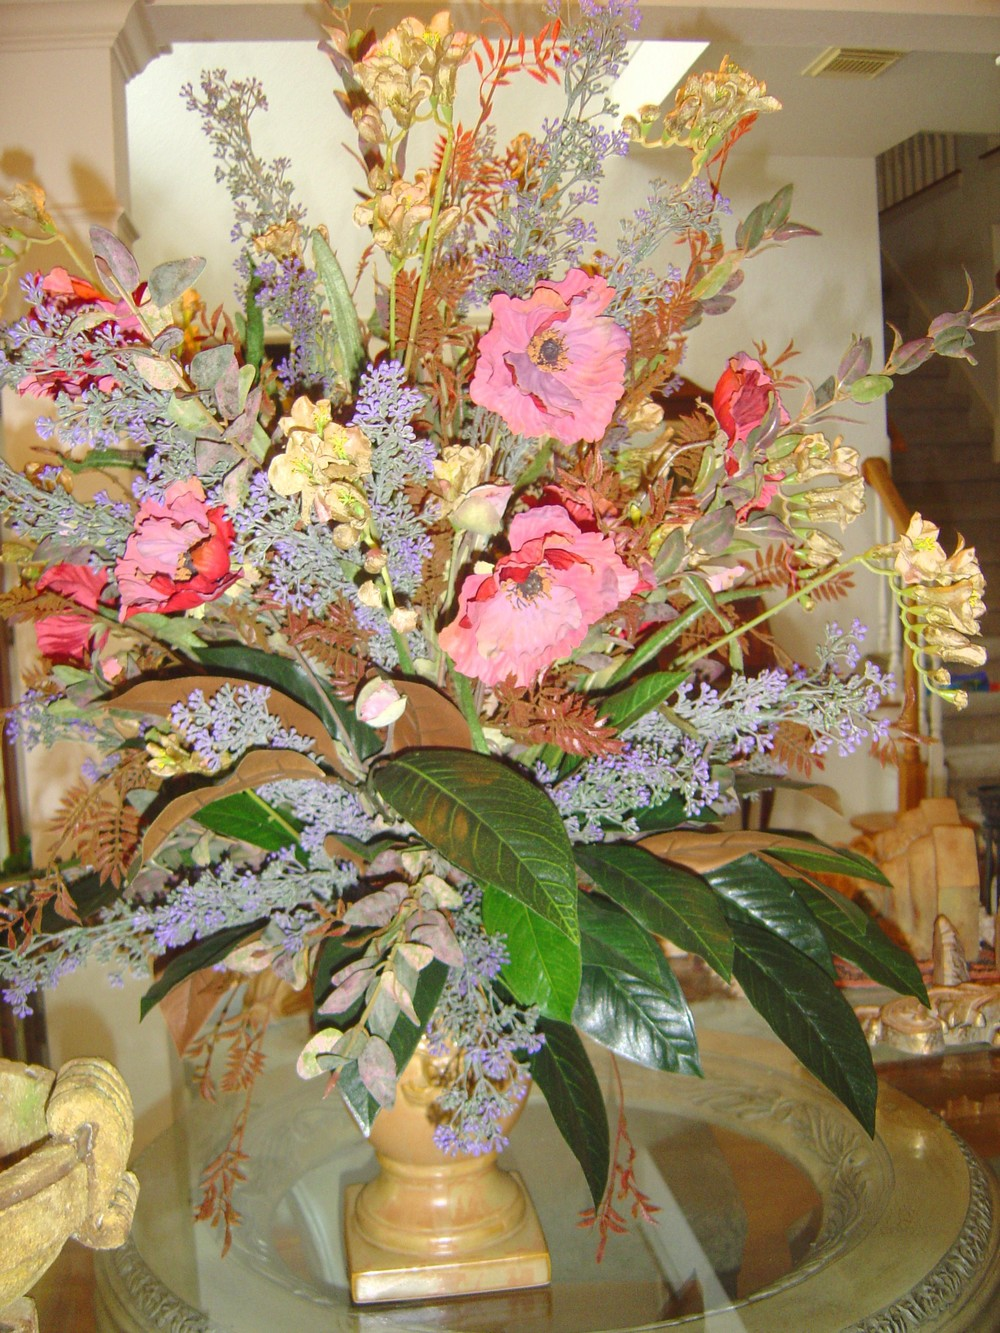 Flower arrangements 005.JPG